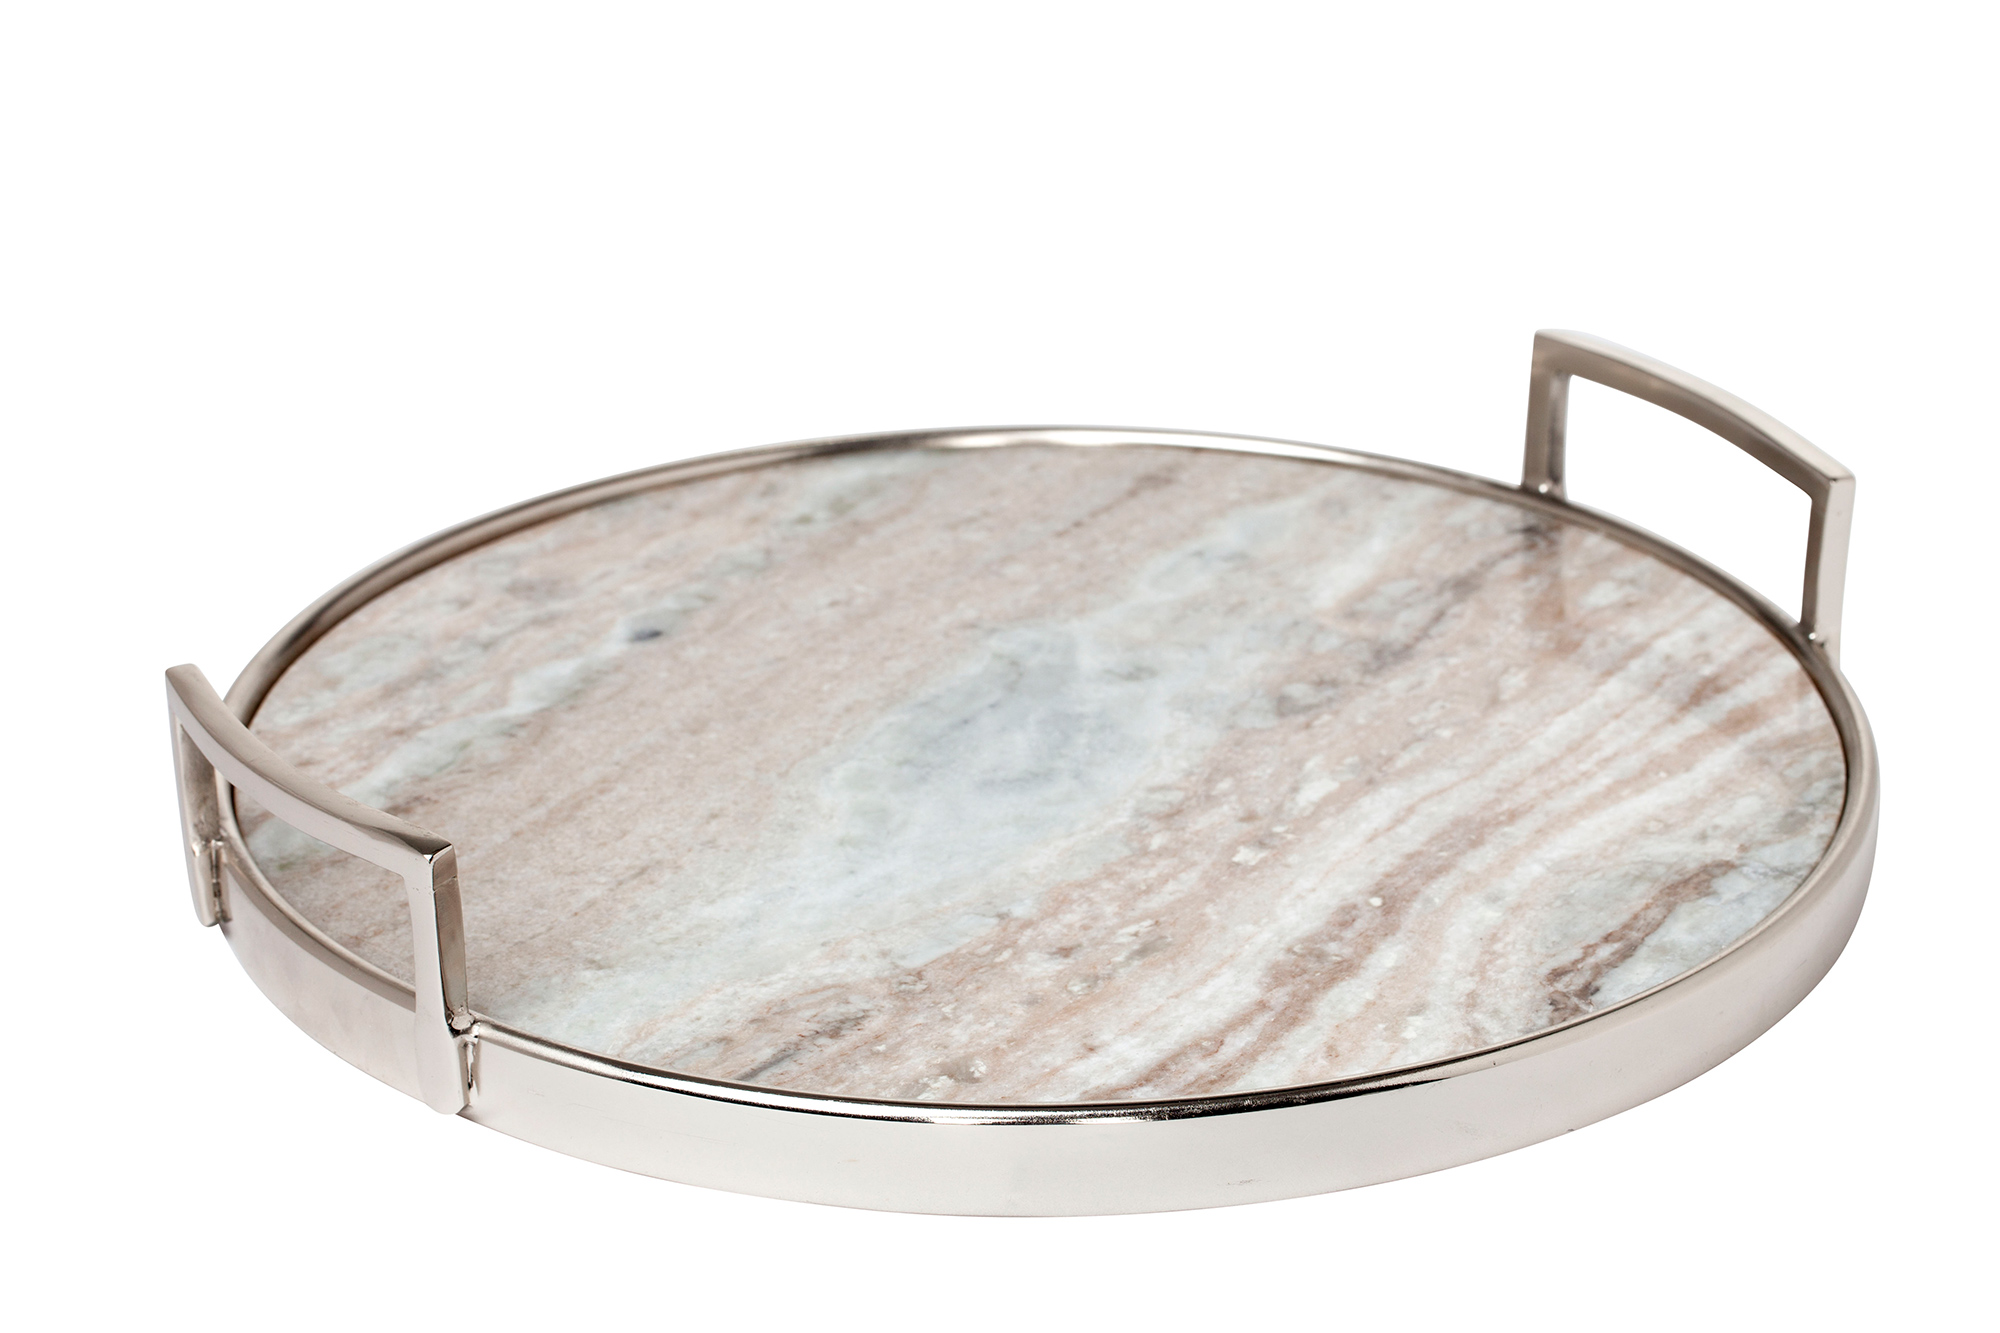 target-look-1-tray